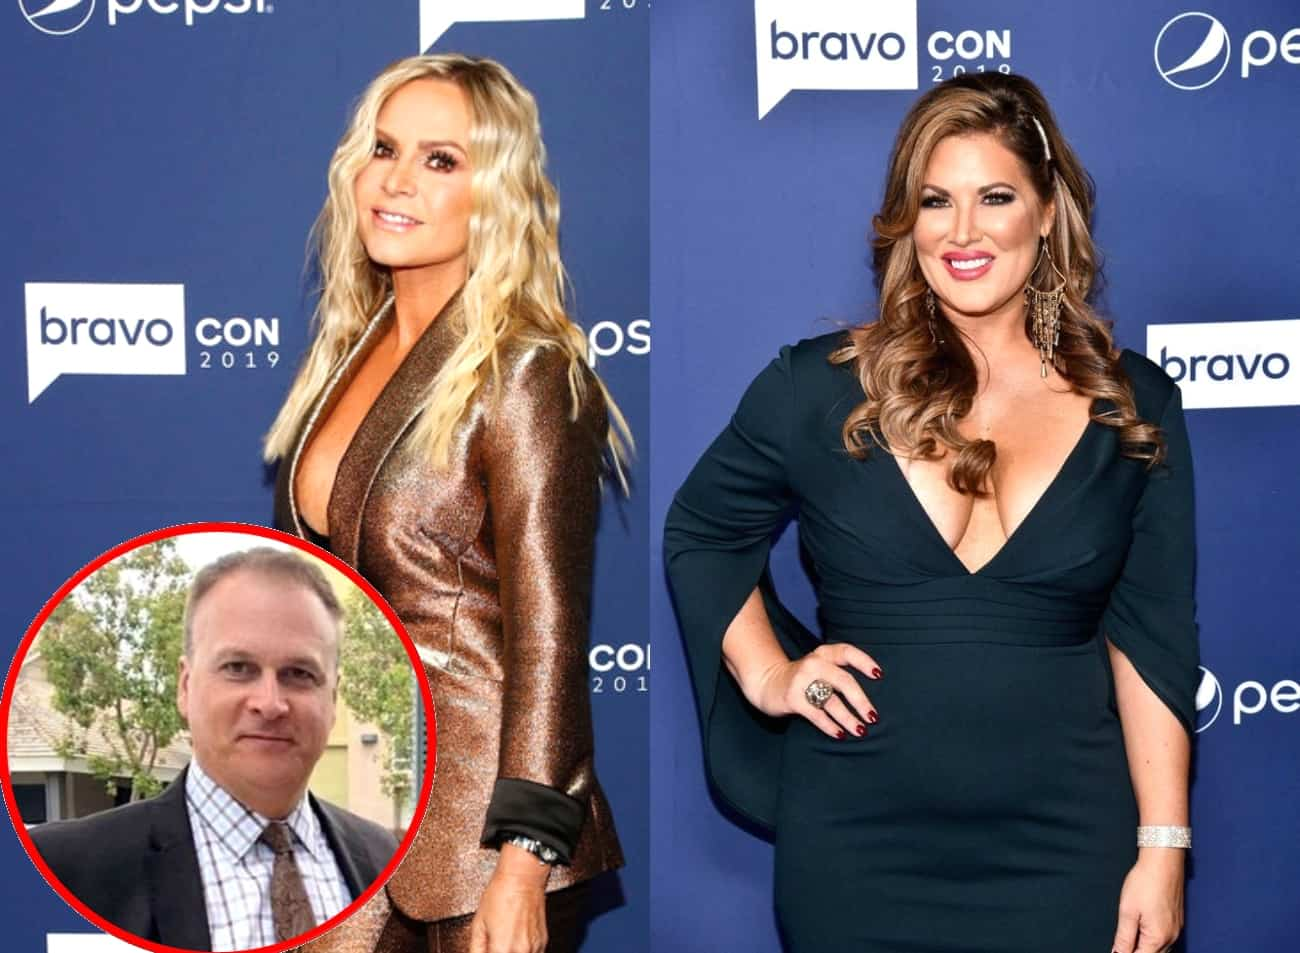 Tamra Judge On Why Emily Simpson is Not a Good Fit for RHOC, Plus She Gets Emotional When Speaking About Ex-Husband Simon Barney